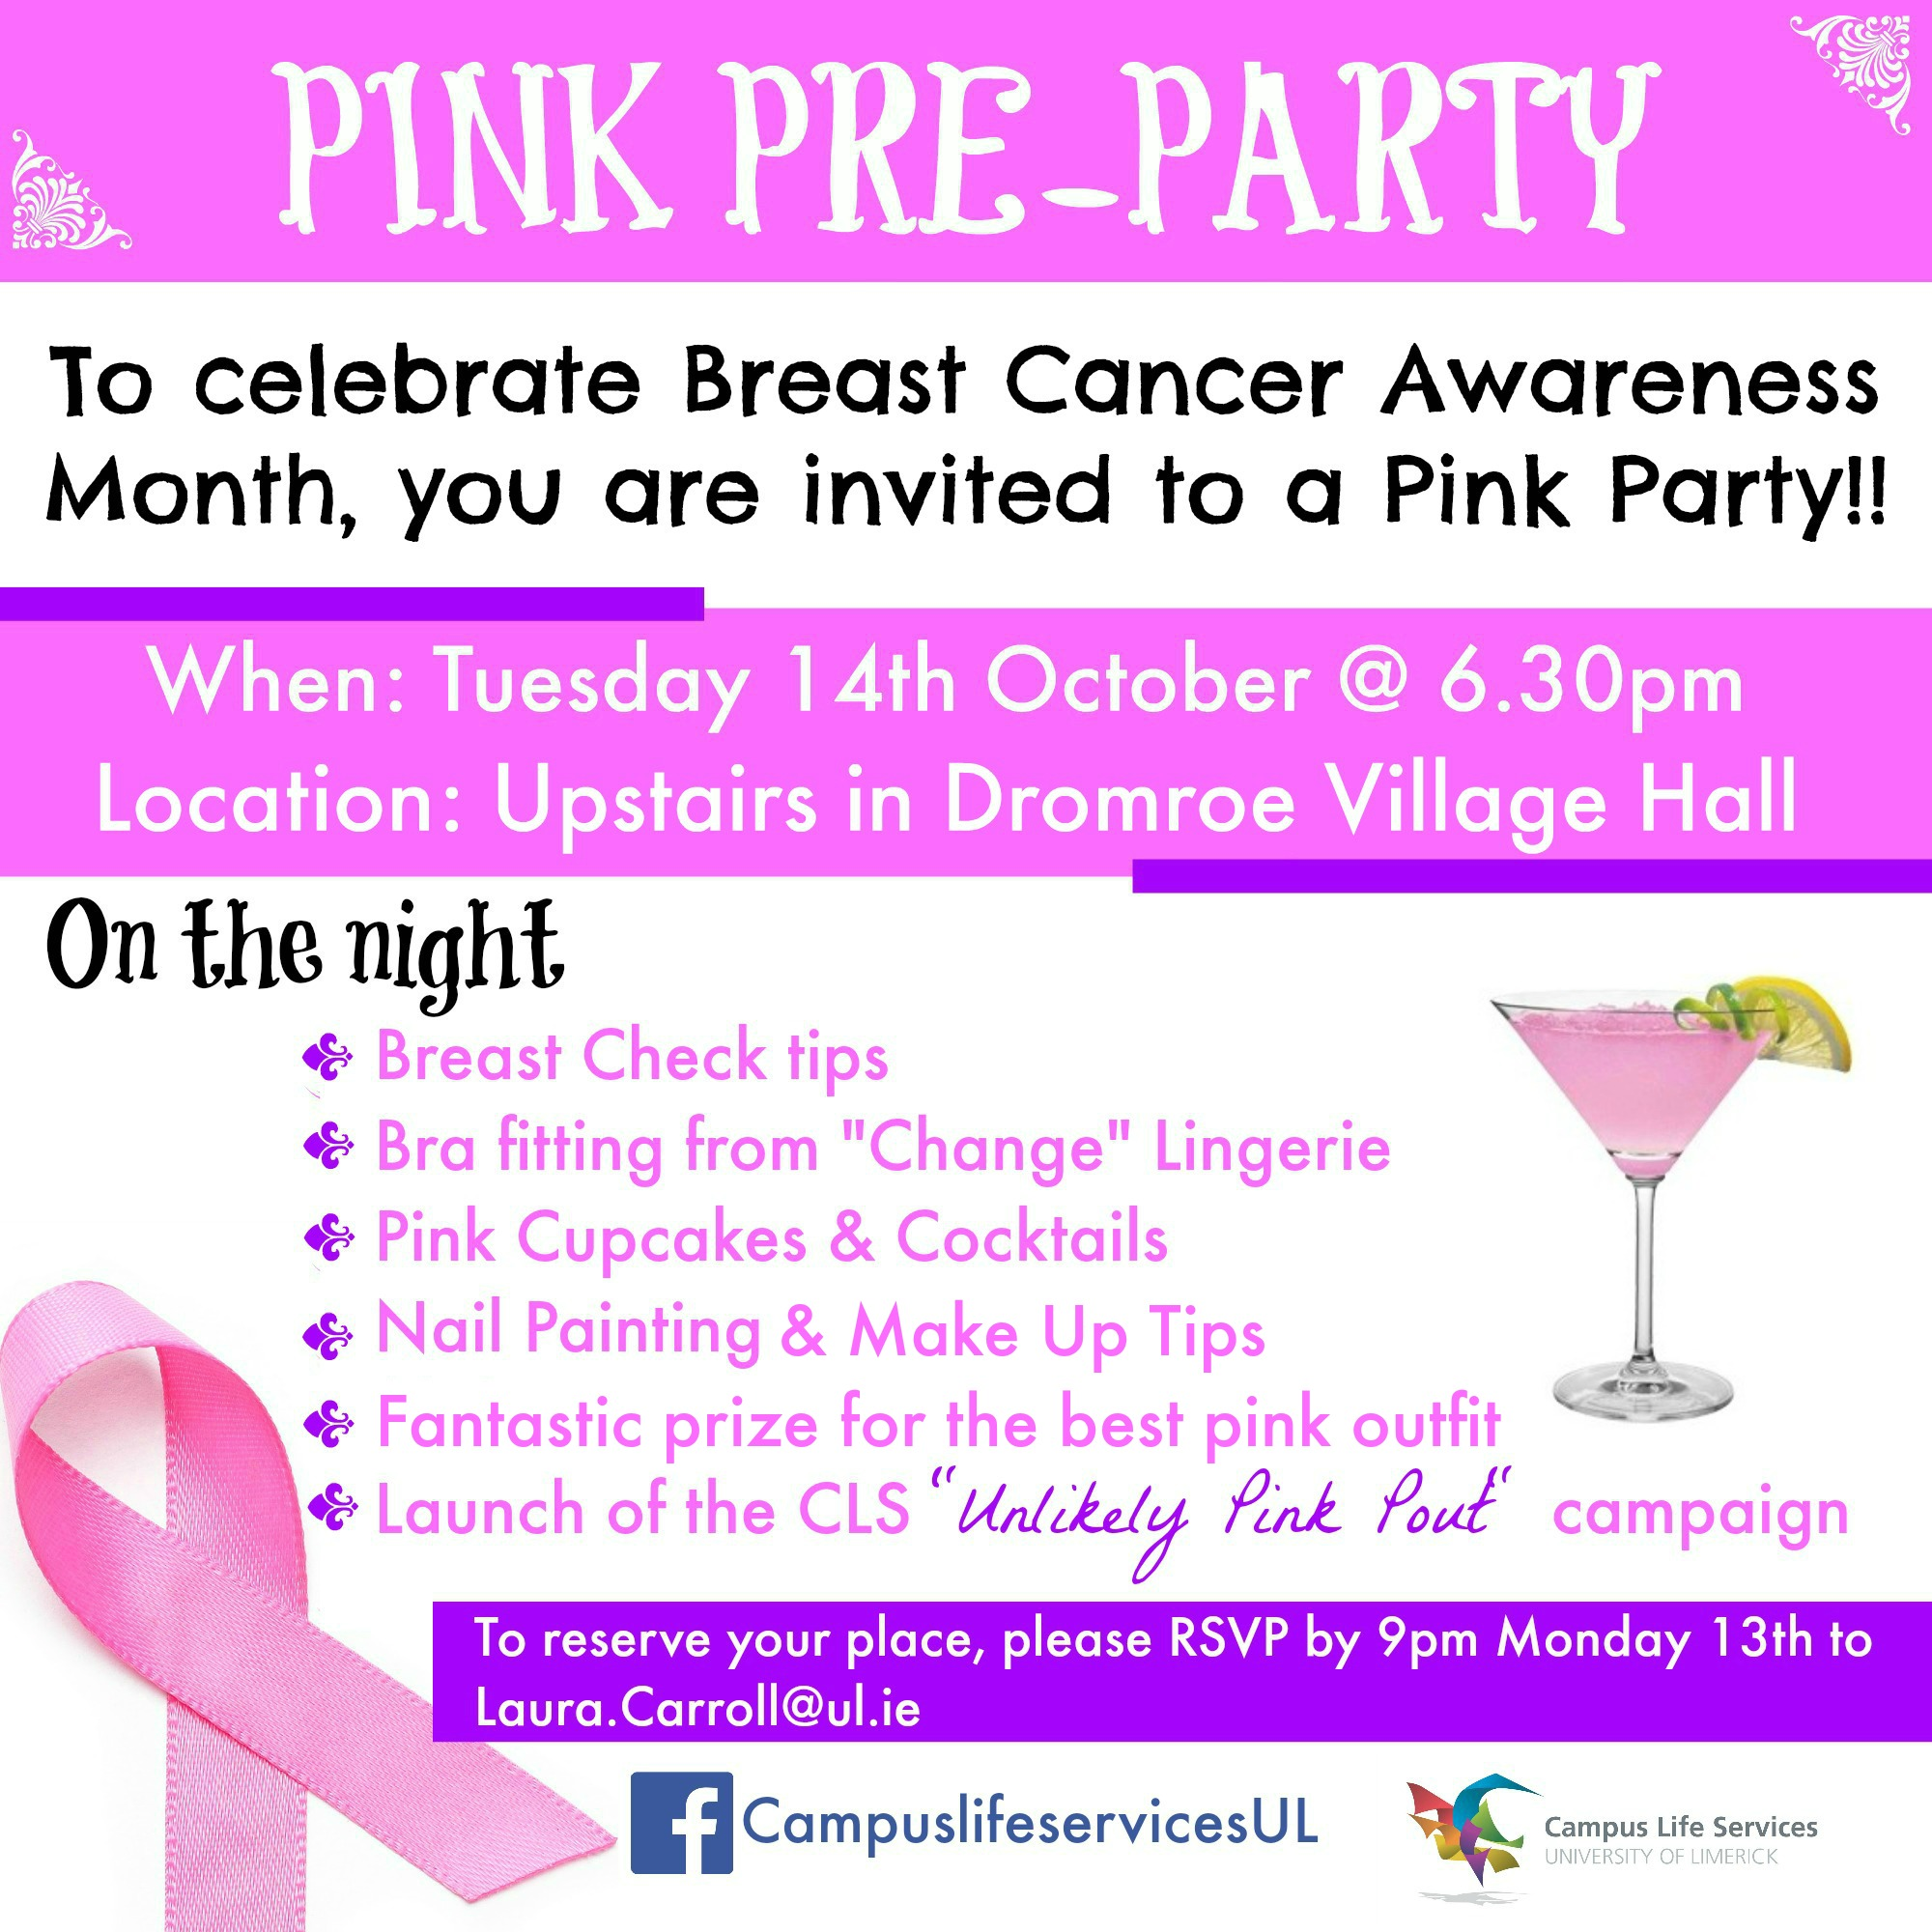 Breast Cancer Awareness 'Pink Party'!